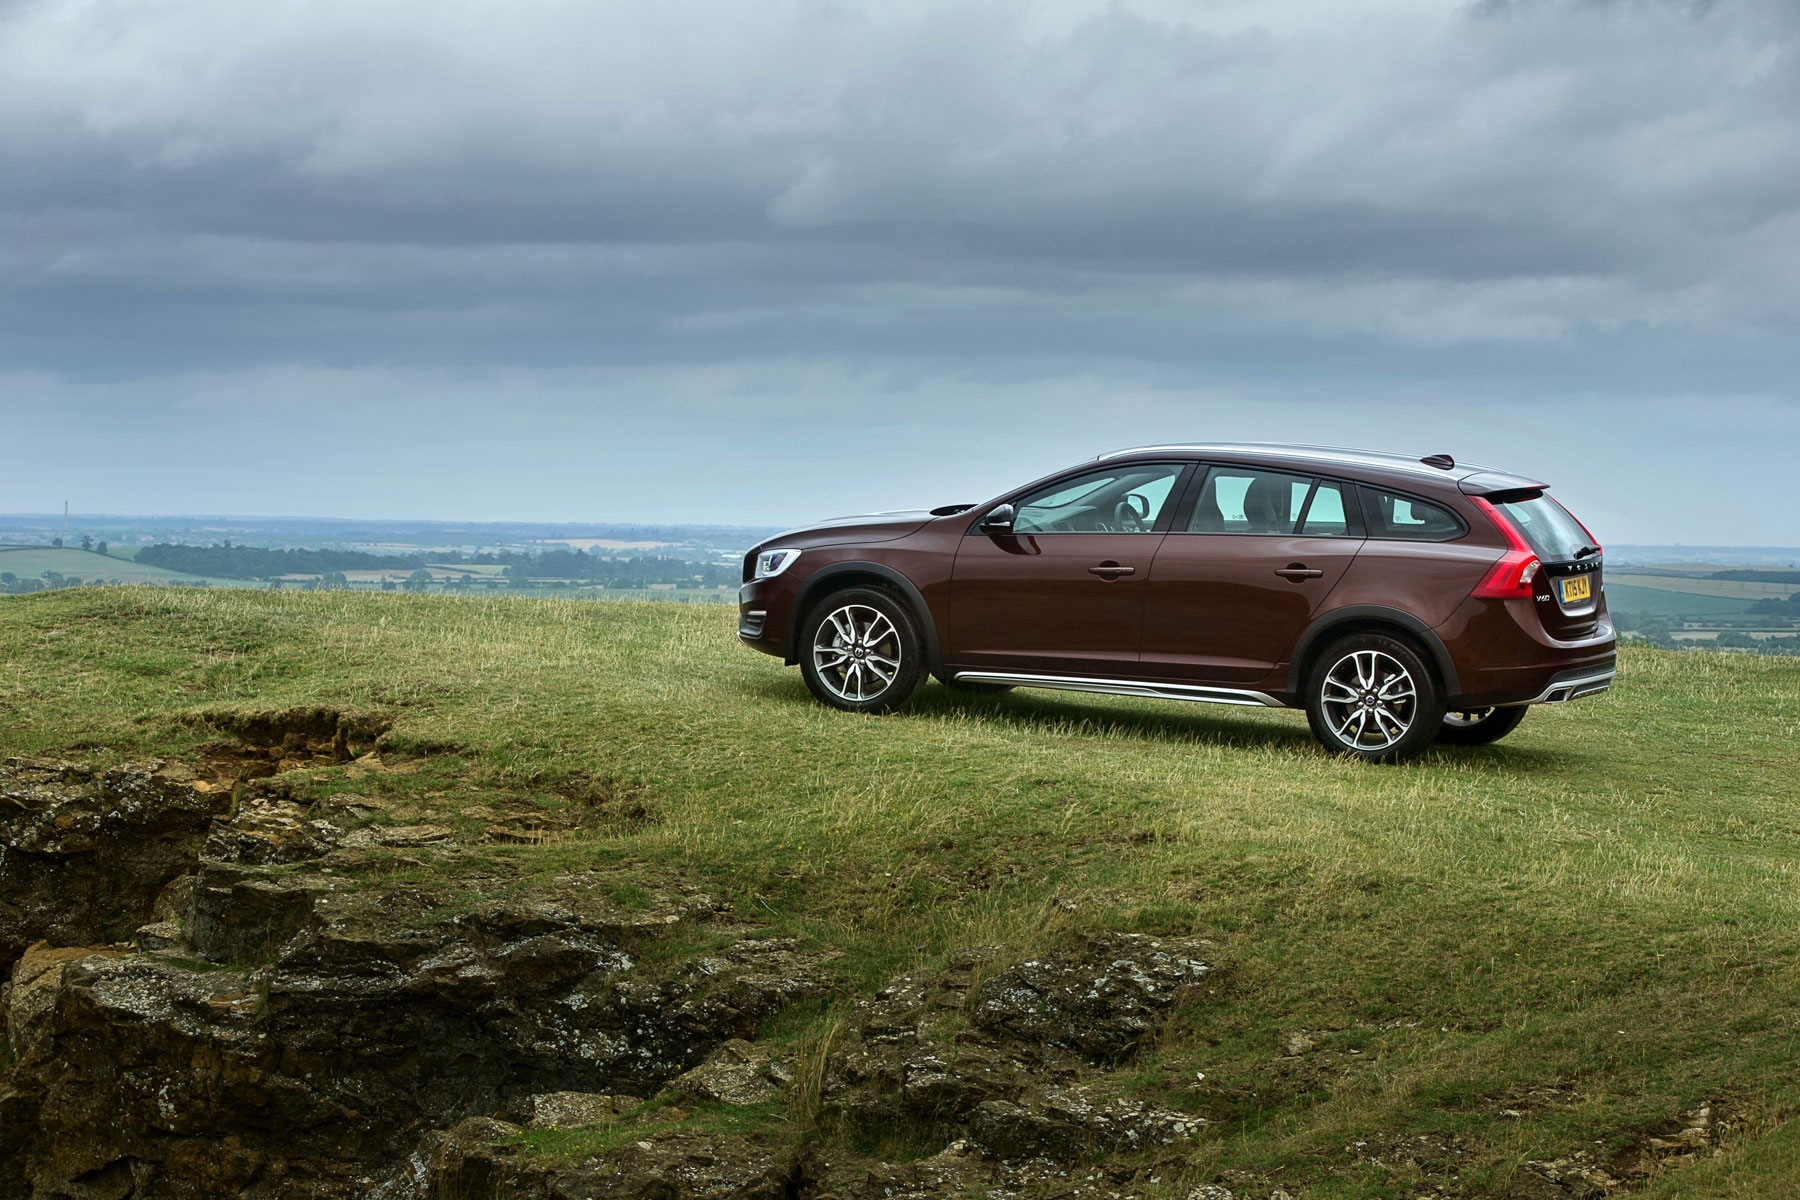 volvo v60 cross country review 2015 first drive motoring research. Black Bedroom Furniture Sets. Home Design Ideas